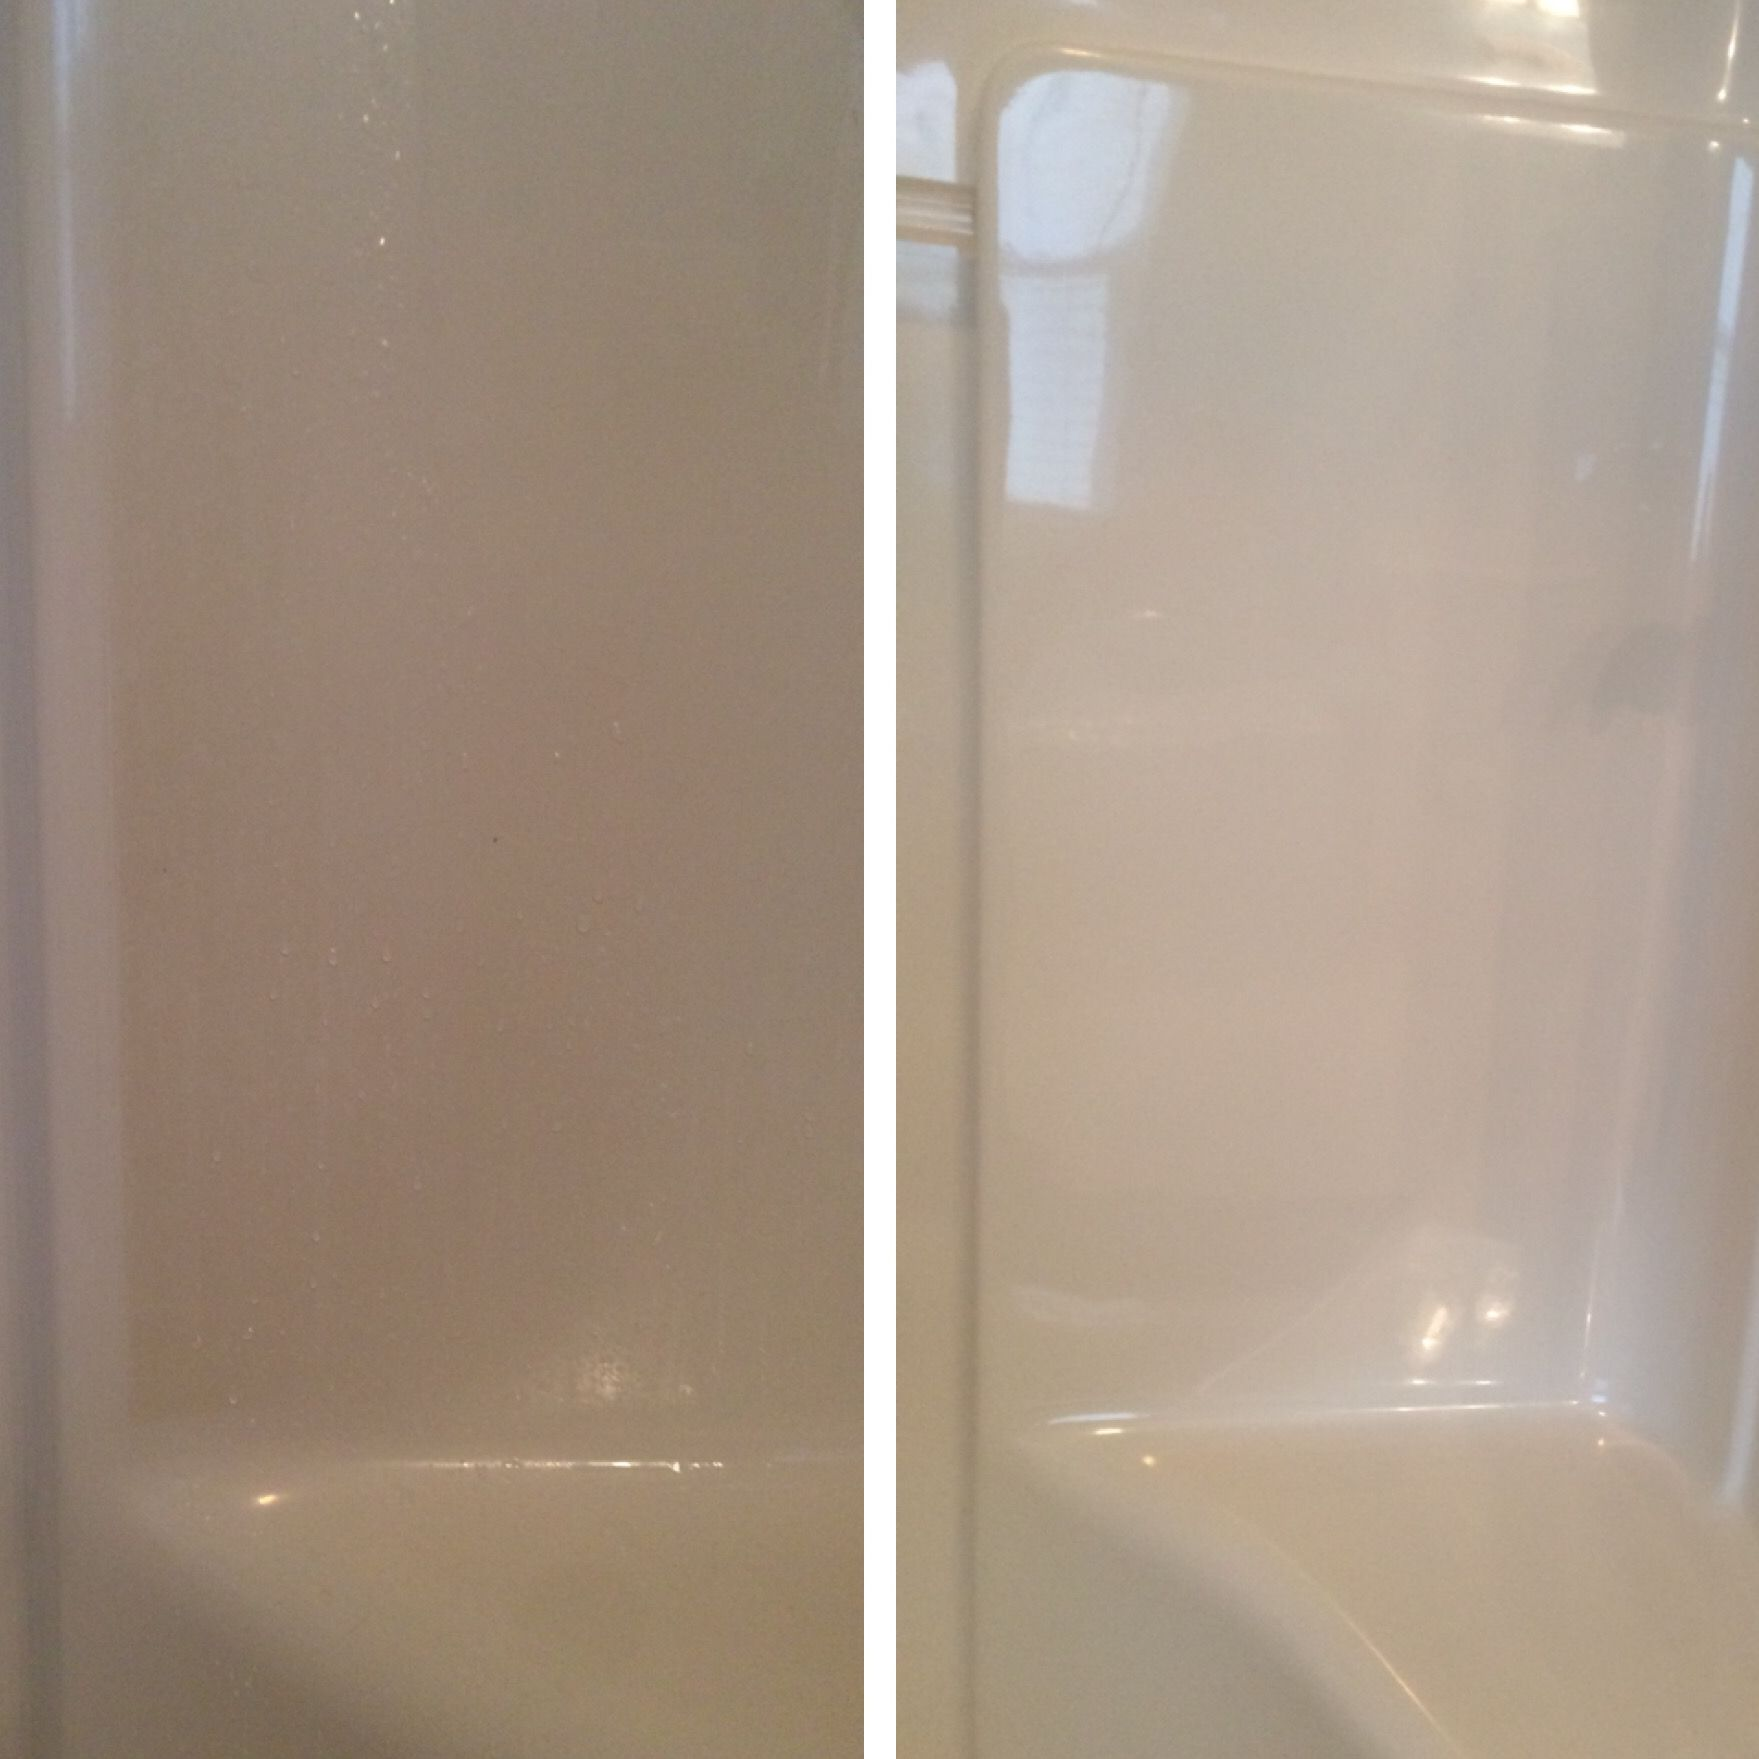 CMC Bathtub Refinishing and Repairs